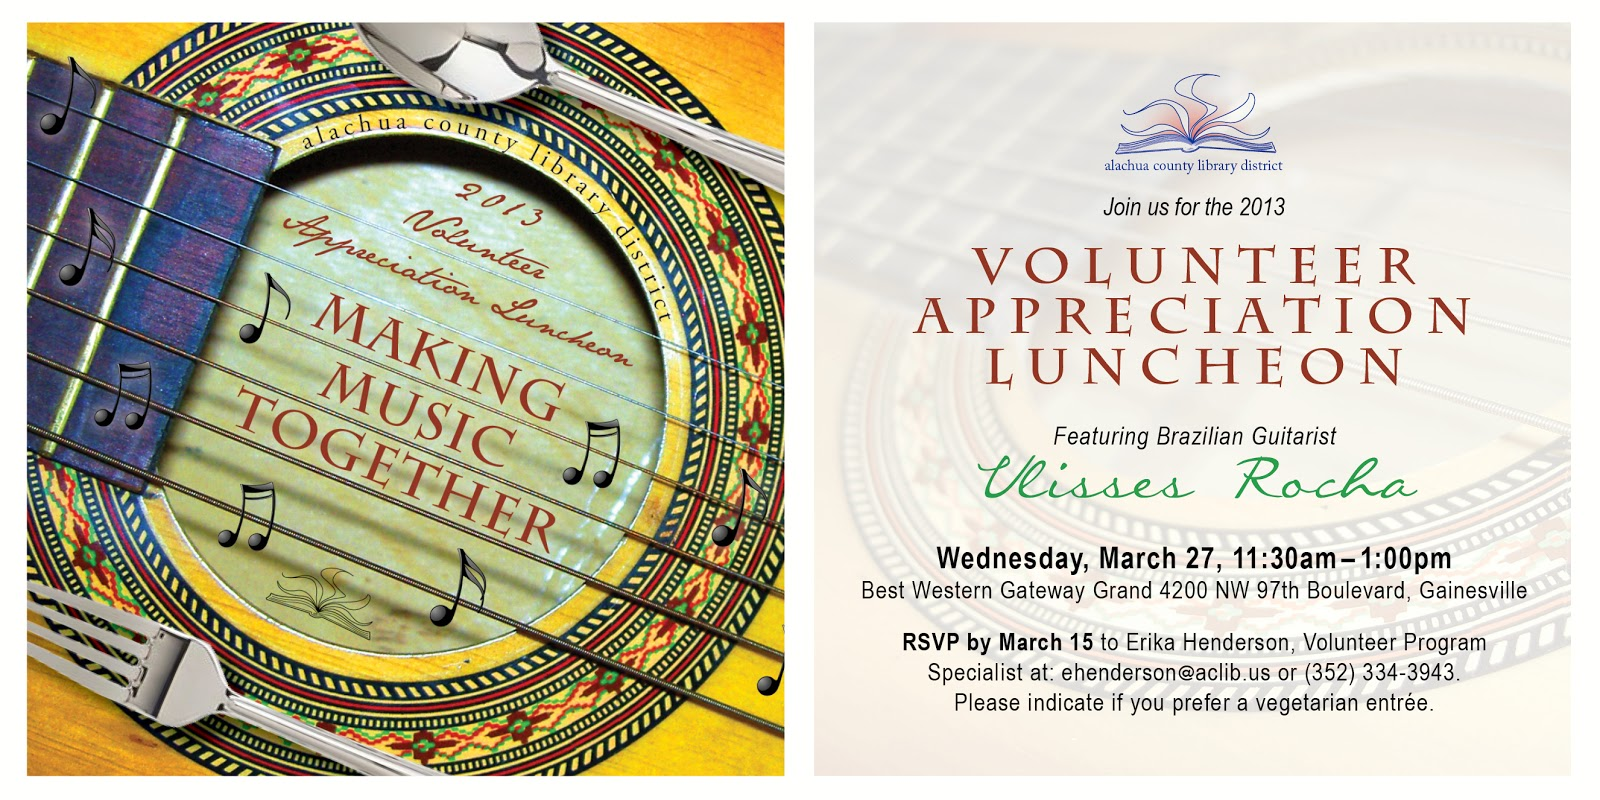 Library Volunteer Appreciation Luncheon Invitation ProgramTwice